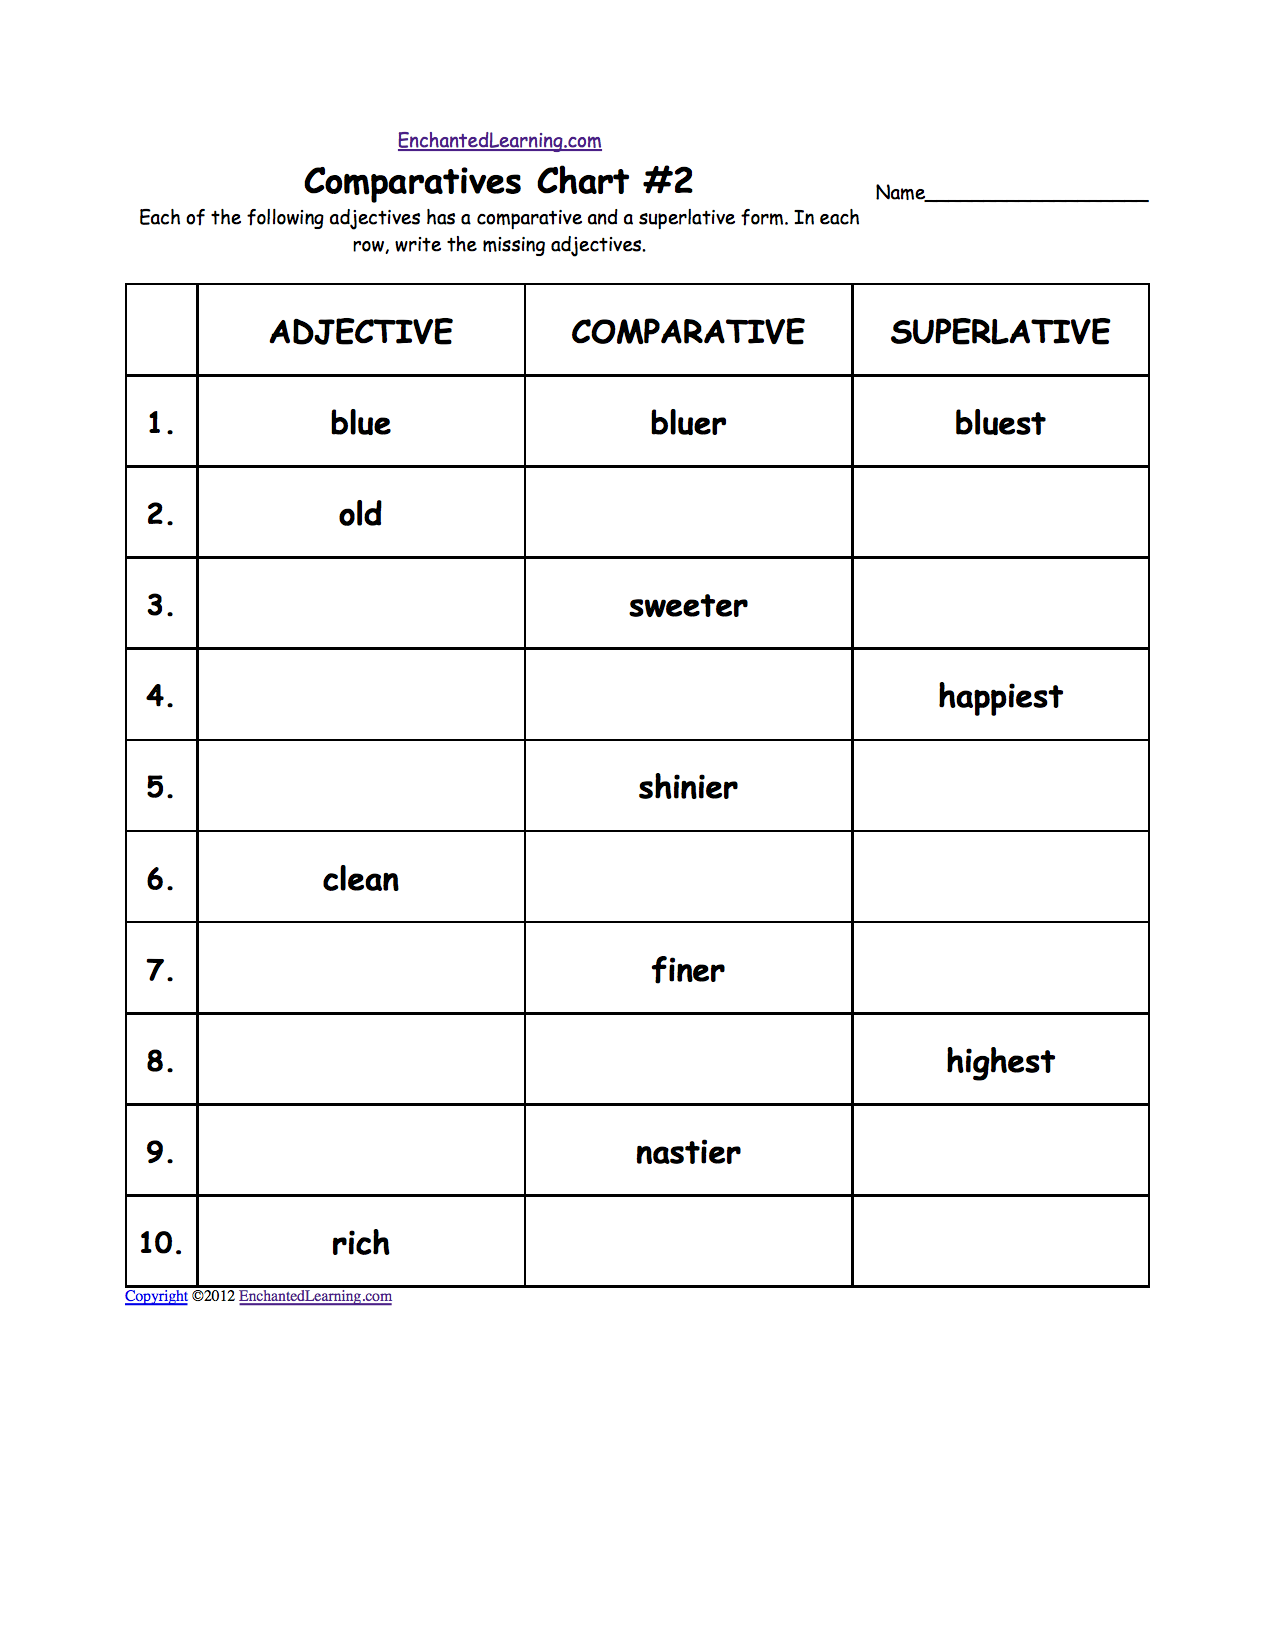 Worksheets Comparative Adjectives Worksheet comparative and superlative adjectives worksheet printout enchantedlearning com